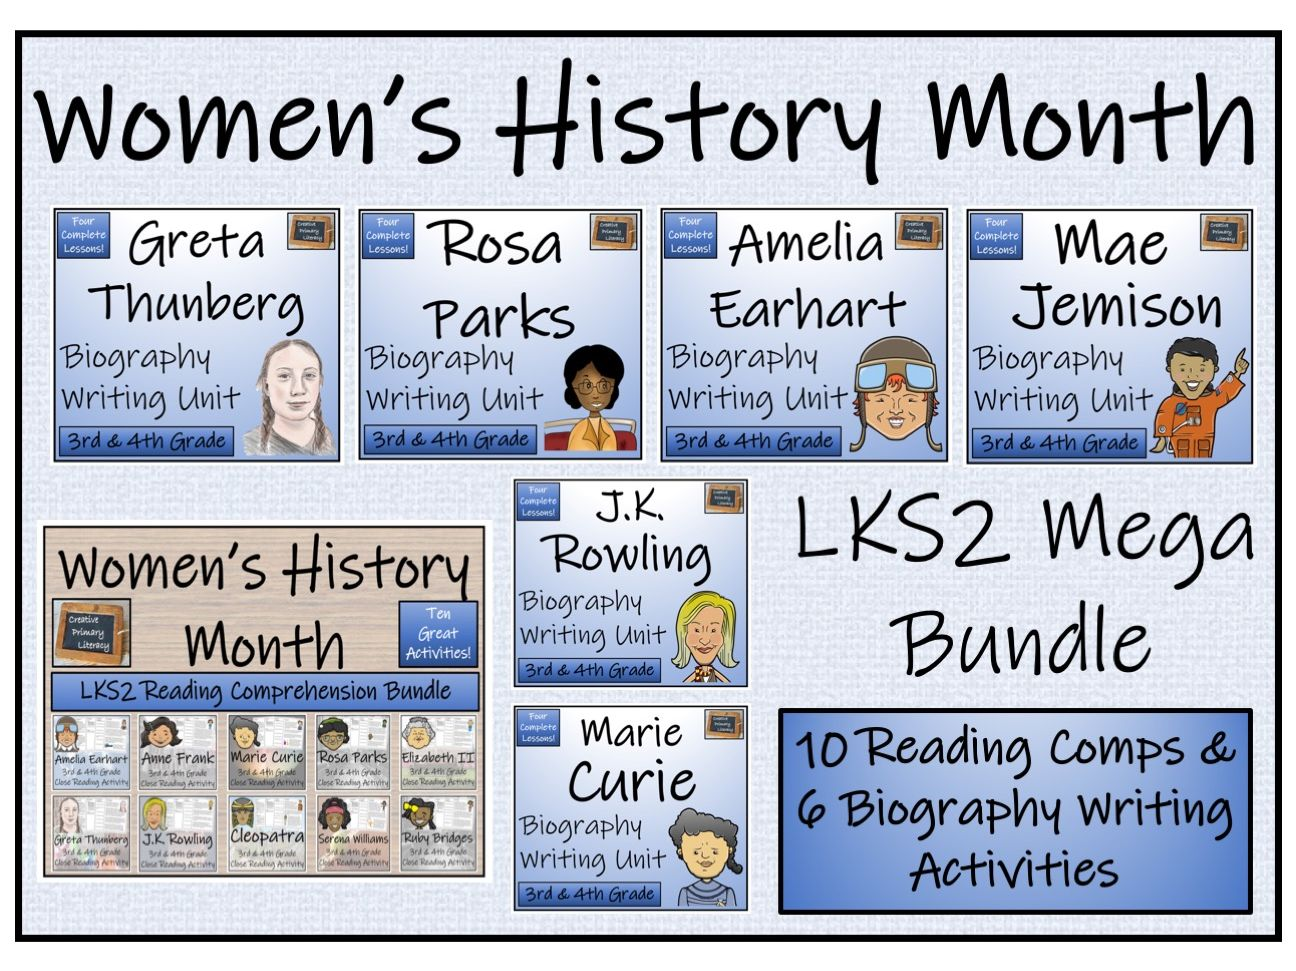 LKS2 Women's History Month Reading Comprehension & Biography Writing Mega Bundle